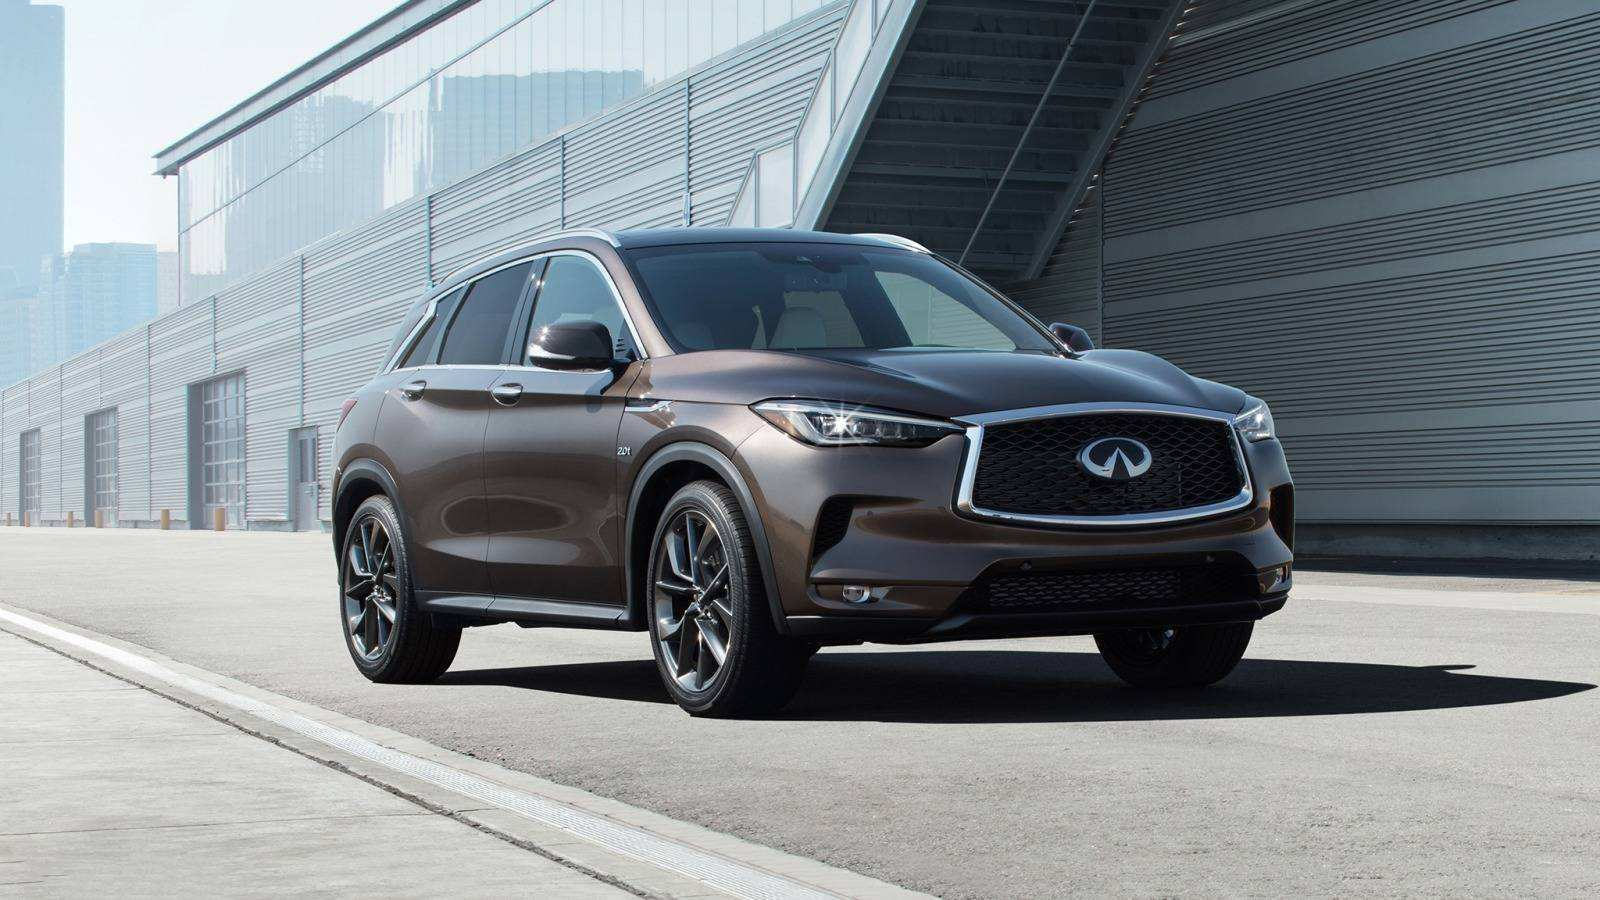 35 Best Review The Infiniti Qx50 2019 Hybrid Concept Spy Shoot with The Infiniti Qx50 2019 Hybrid Concept